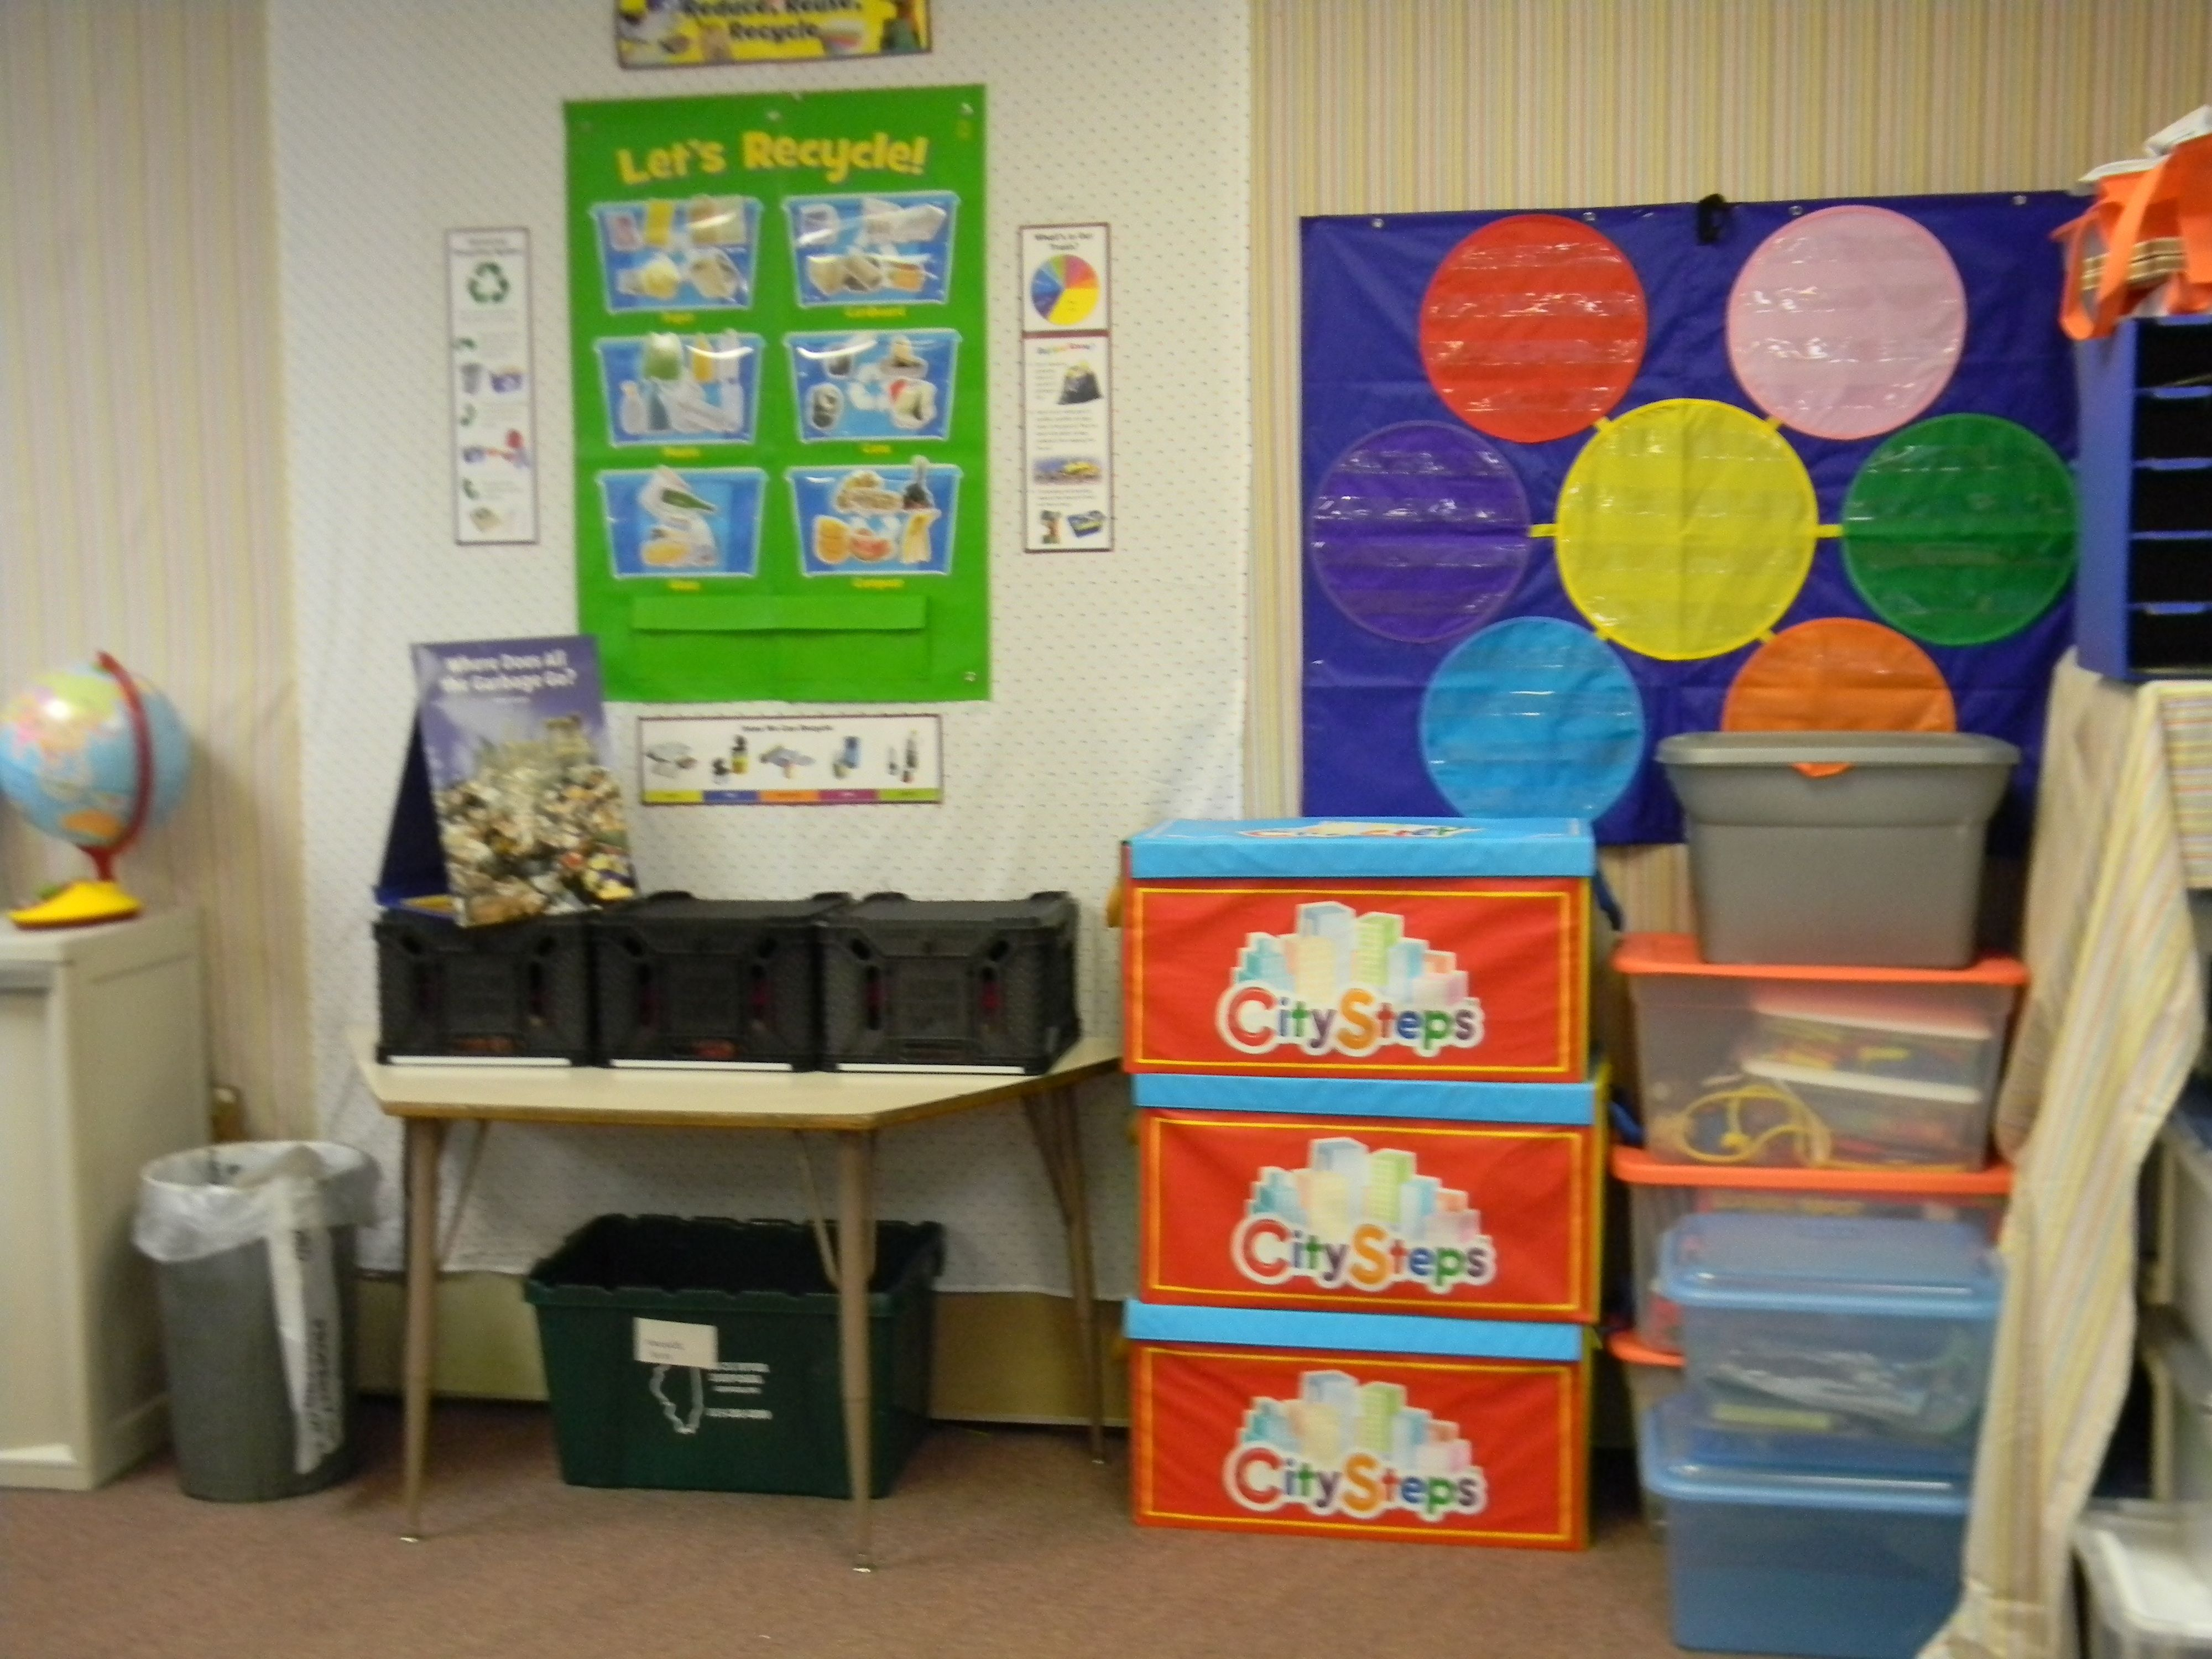 Science Center Recycling Is A Great Way To Teach Sorting